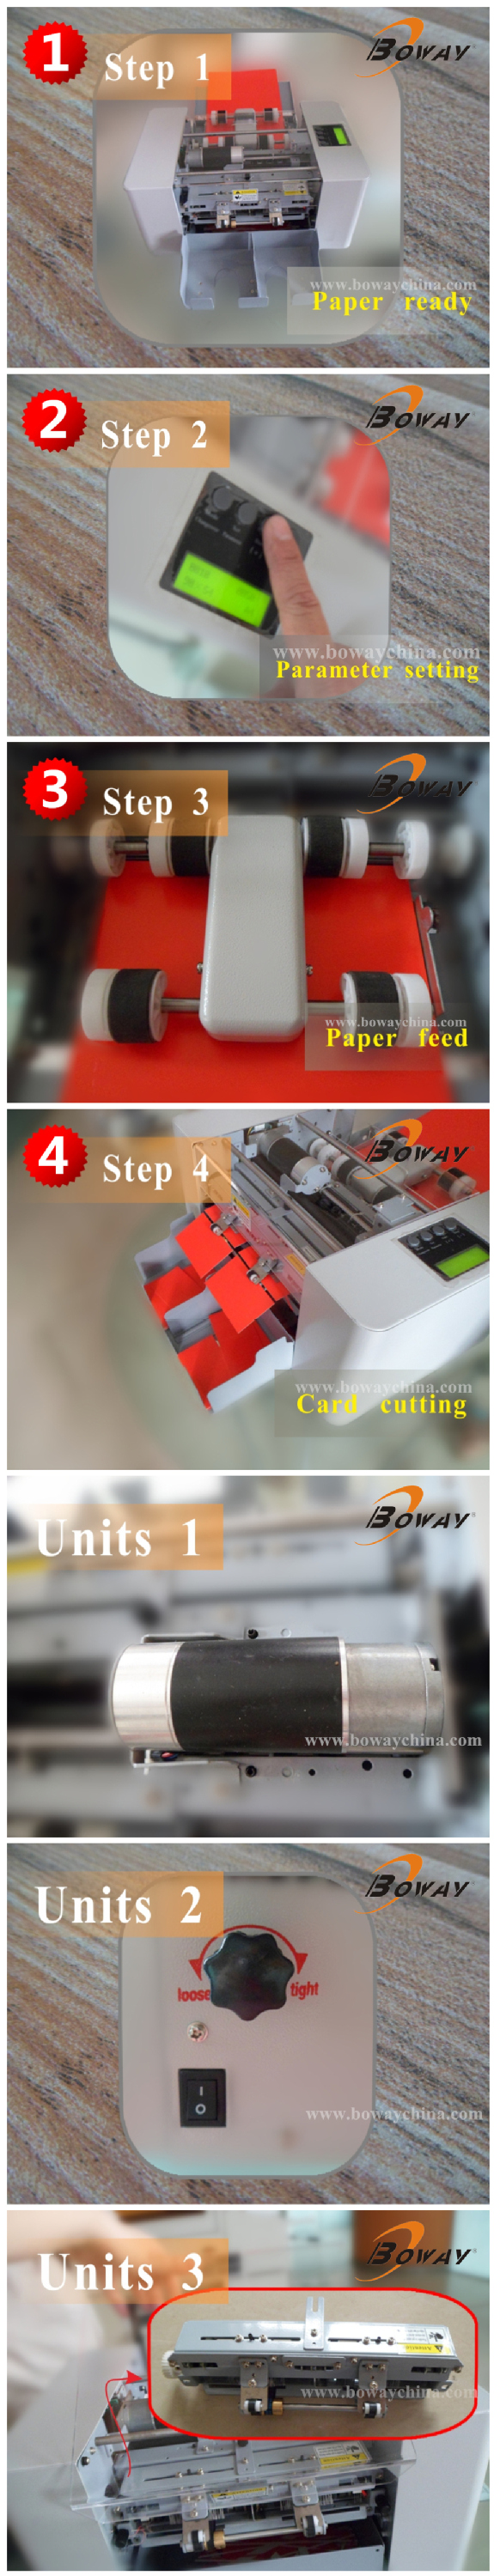 Boway service Electric laminated paper A4 Size automatic business card cutter